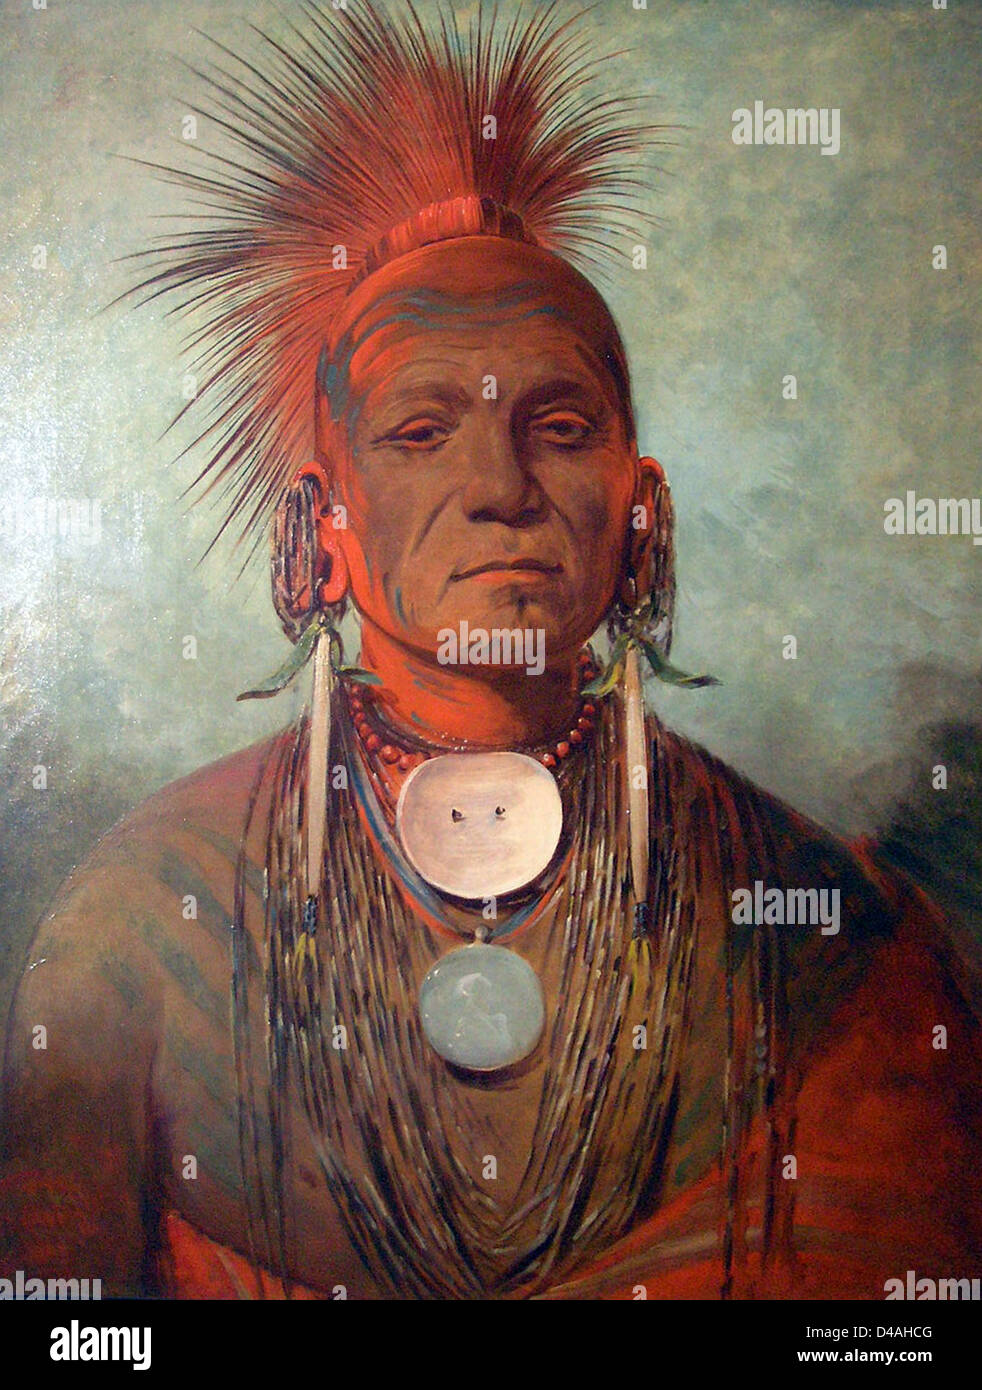 See-non-ty-a, an Iowa Medicine Man by George Catlin (1796–1872) - Stock Image